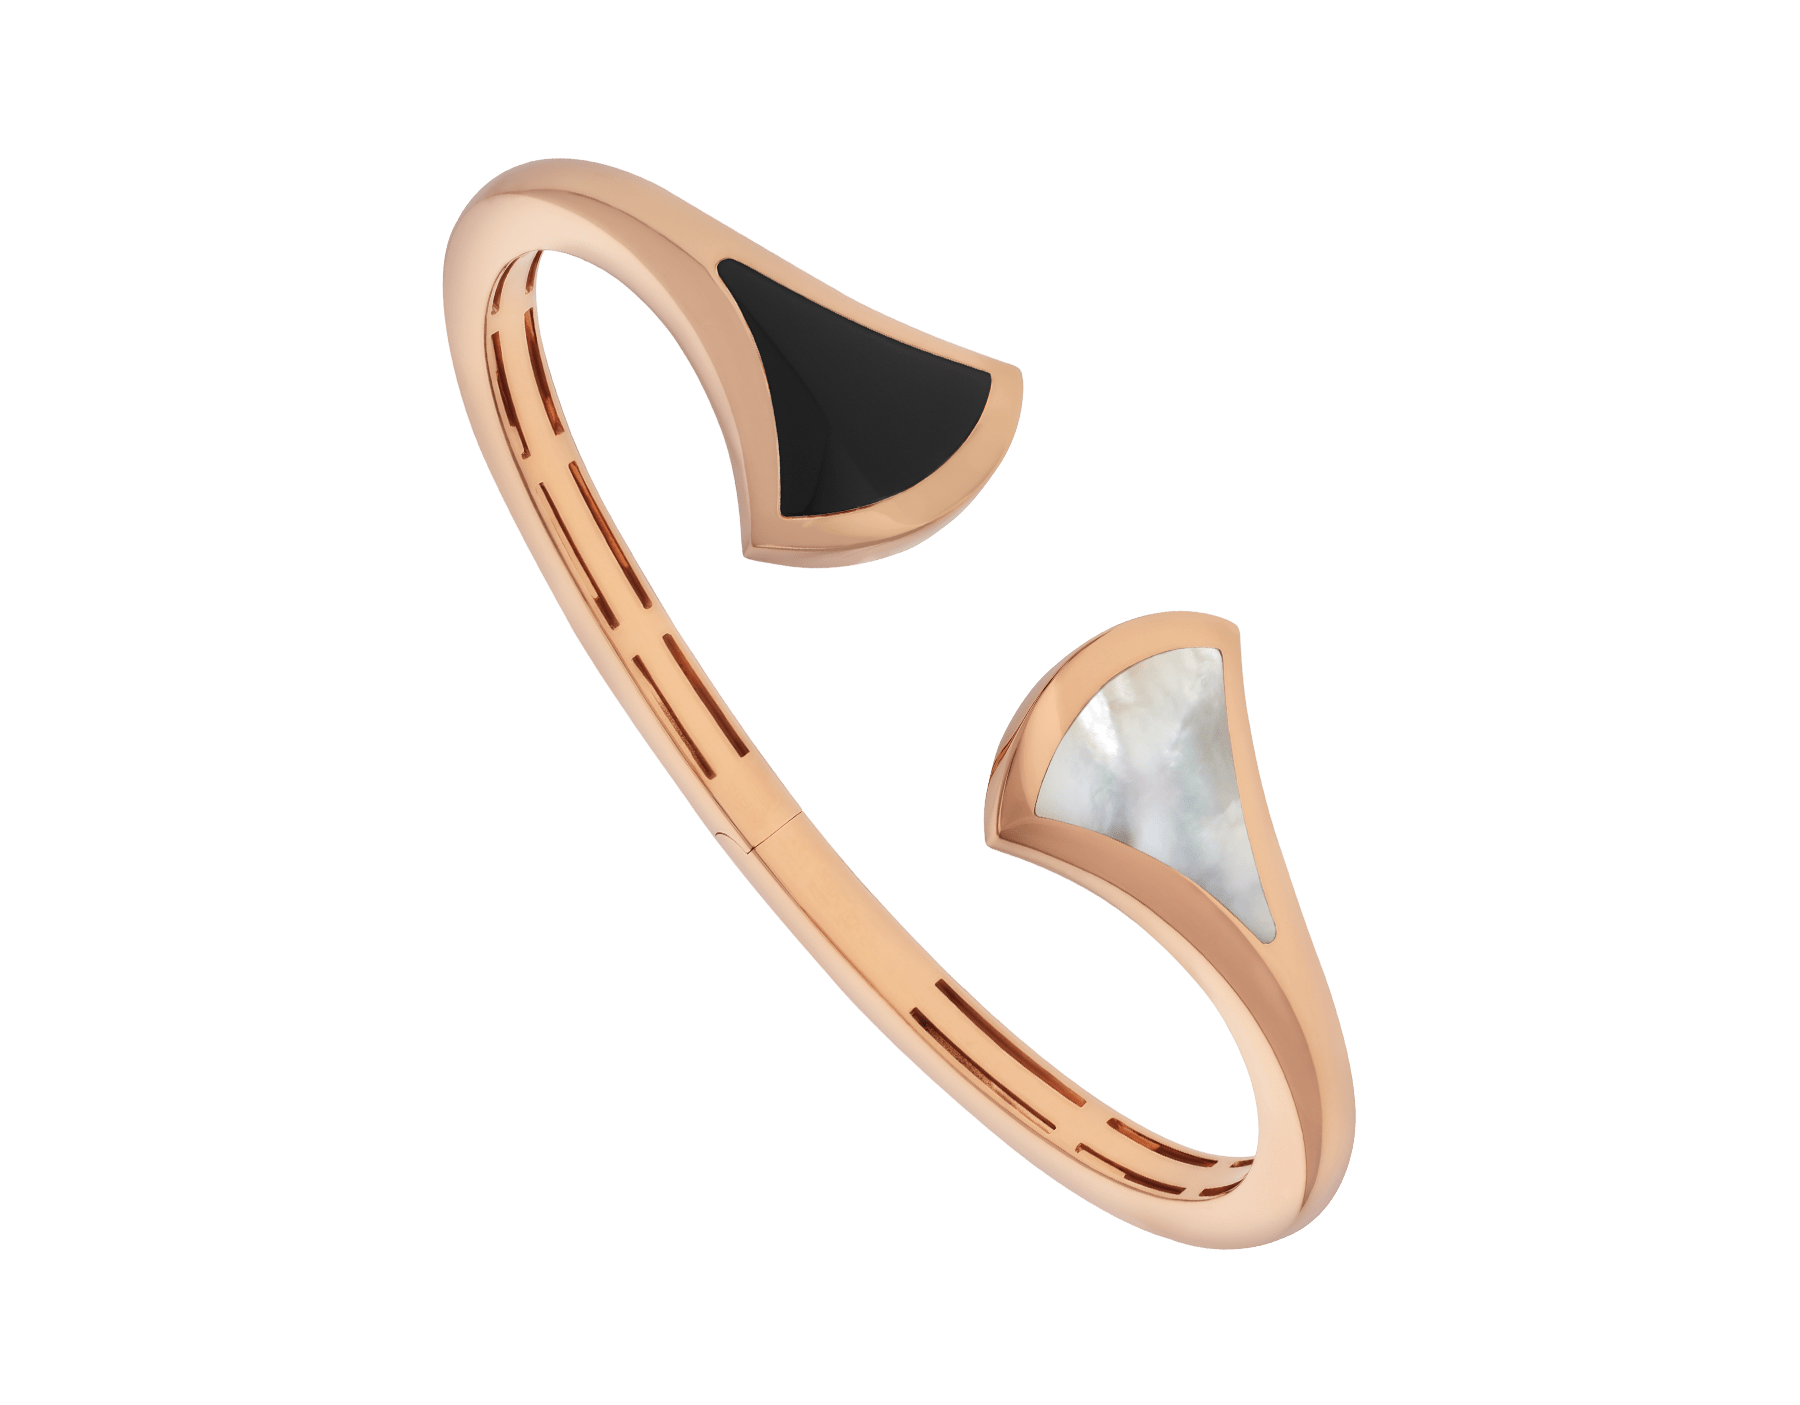 DIVAS' DREAM cuff bracelet in 18 kt rose gold, set with mother-of-pearl and onyx elements. BR857323 image 1